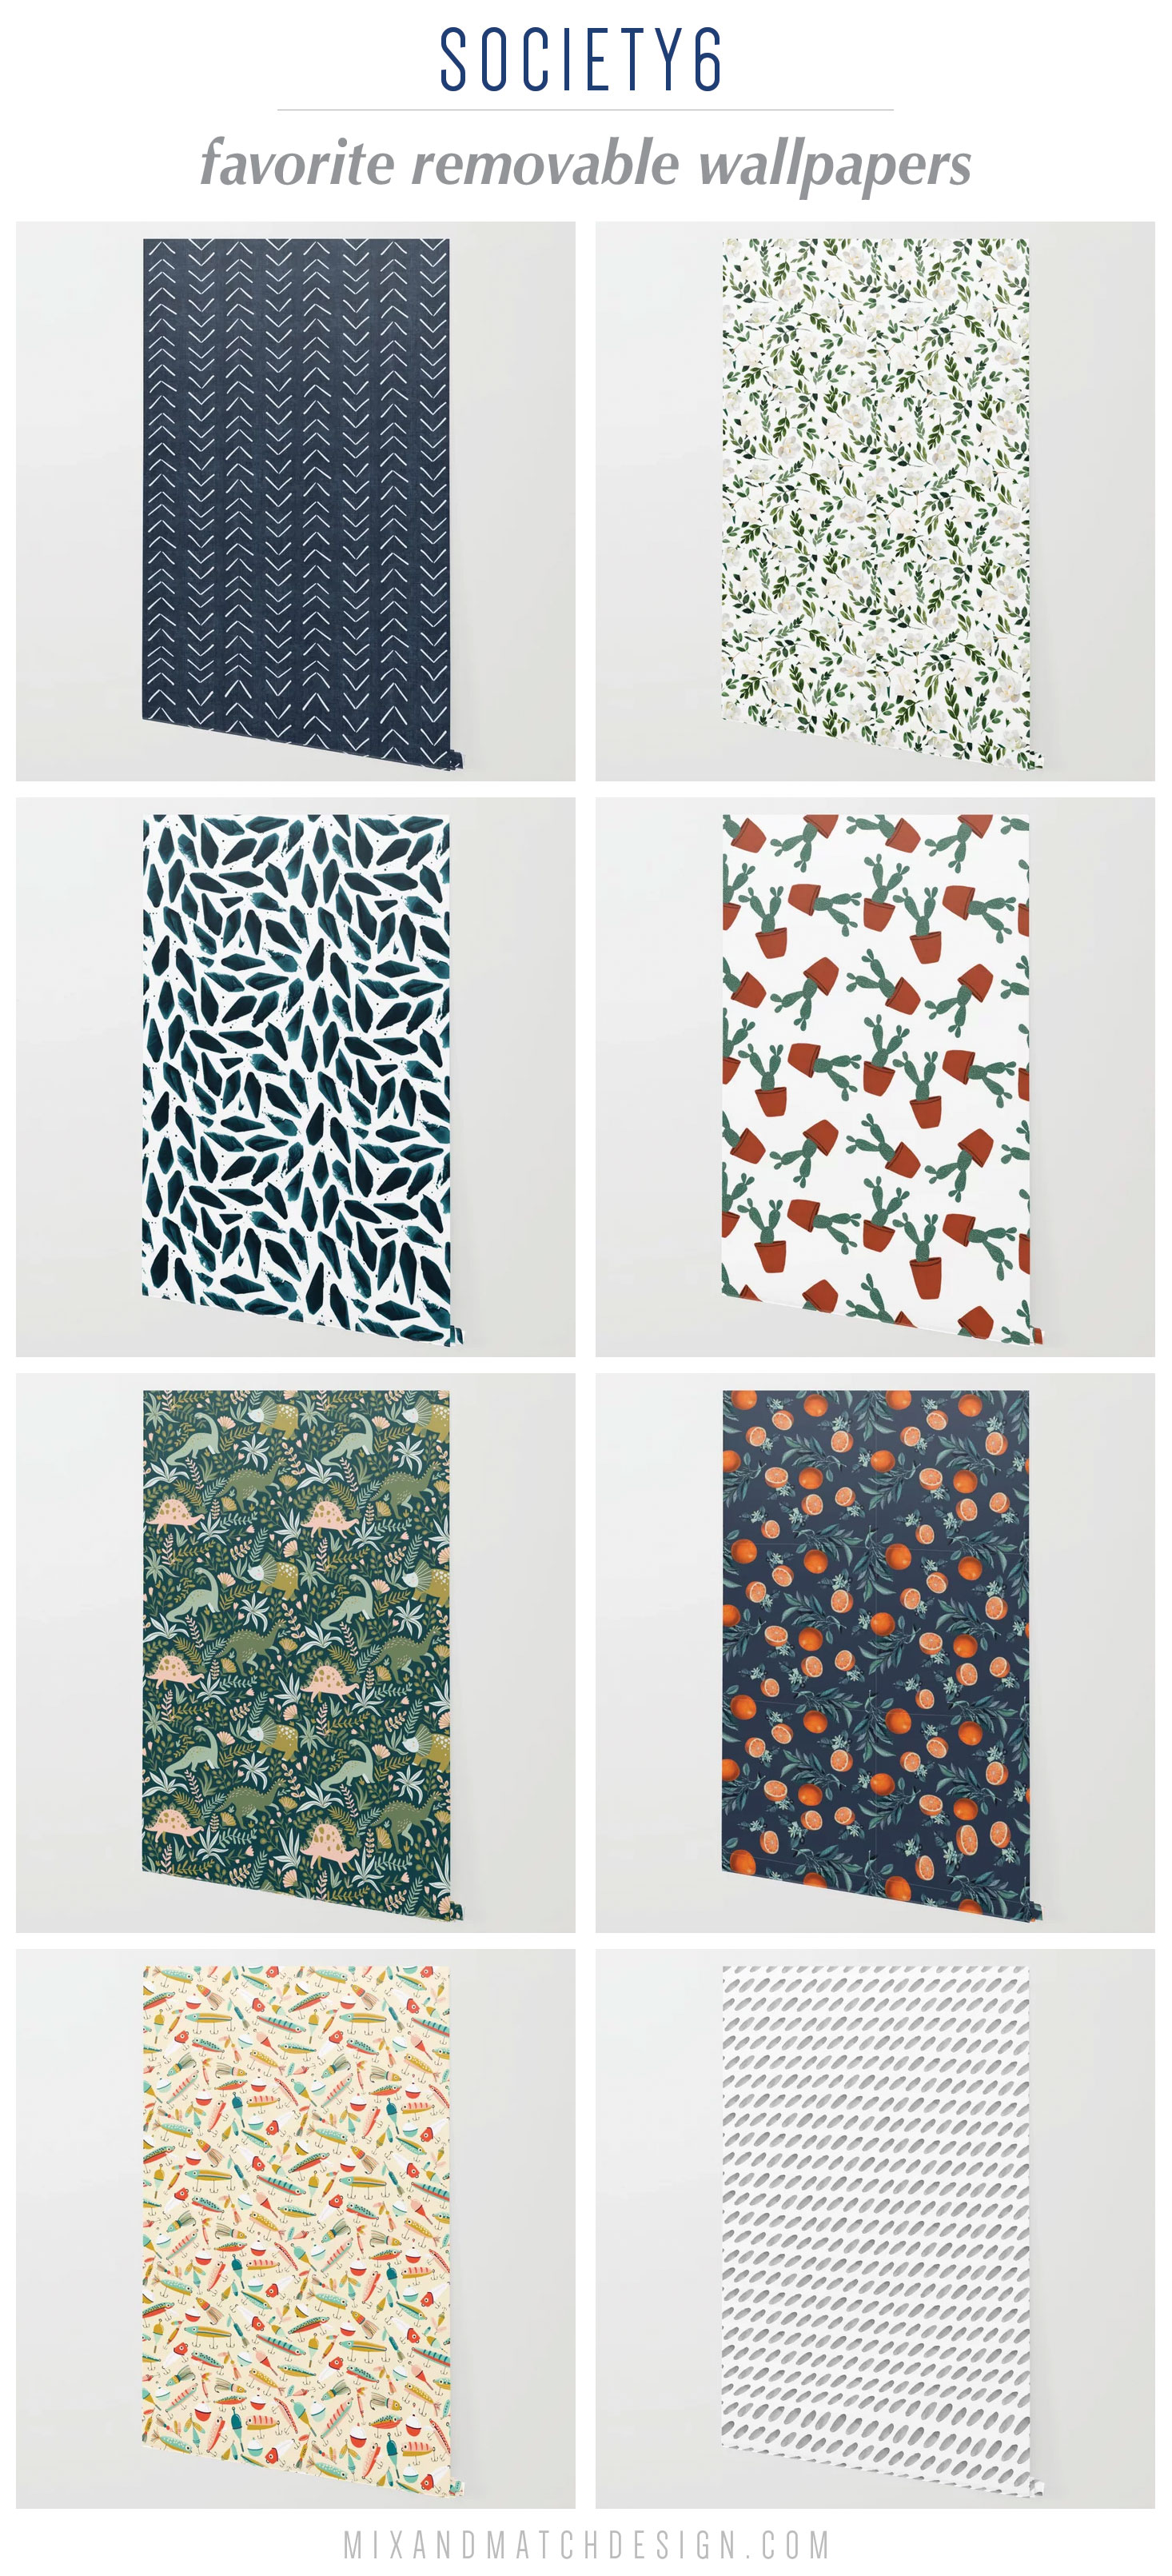 Society6 just launched removable wallpaper on their site and I'm loving it! Removable wallpapers are perfect for powder rooms, bedroom accent walls, entryways, and so many other spots in your home. The fact that it's temporary makes it perfect for a rental or for those of us who have trouble committing to the permanent kind!